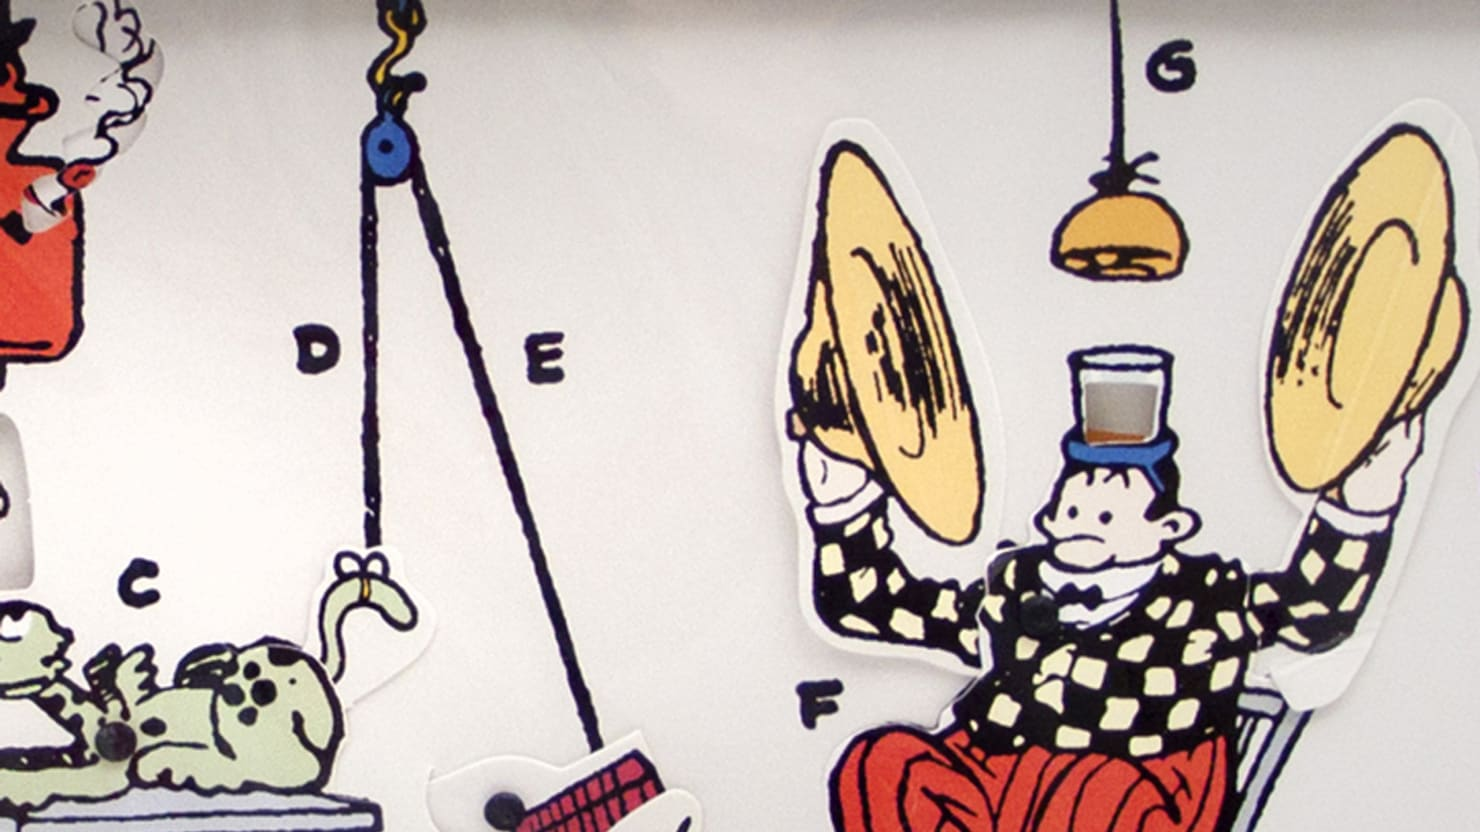 Rube Goldberg's Nutty Inventions Neatly Skewered Our Technocratic World